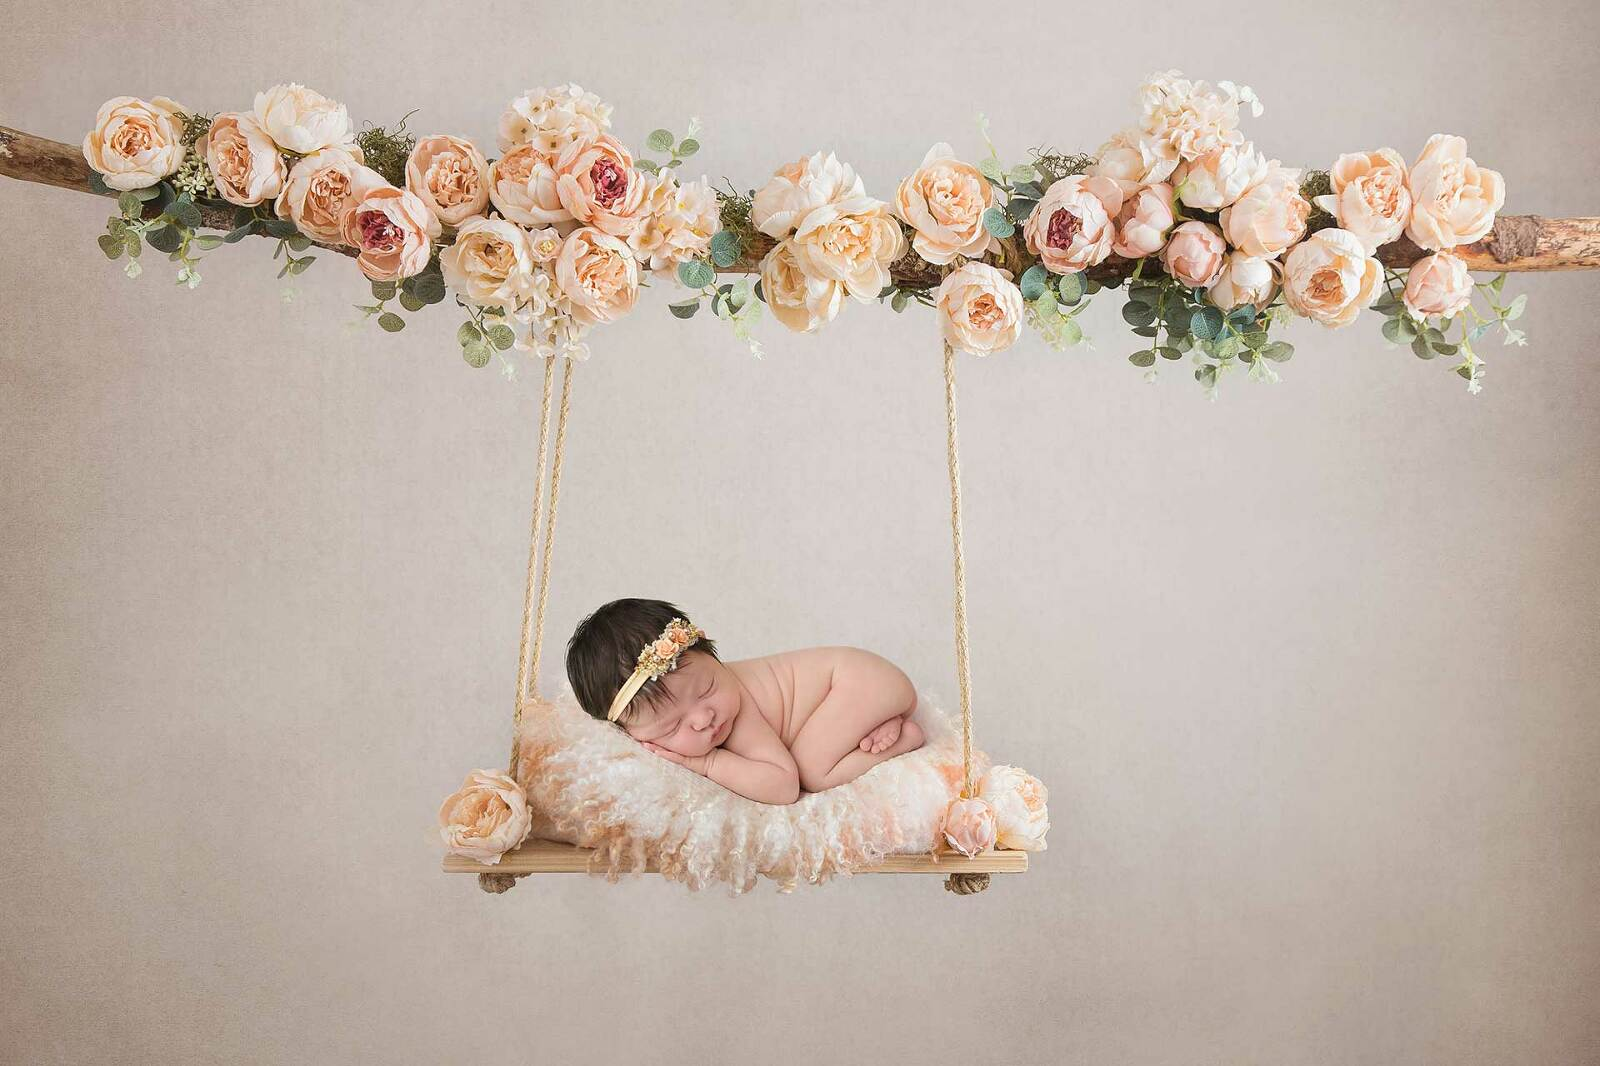 Newborn photography by Dallas/Fort Worth maternity, newborn, and children's photographer Chaunva LeCompte Photography